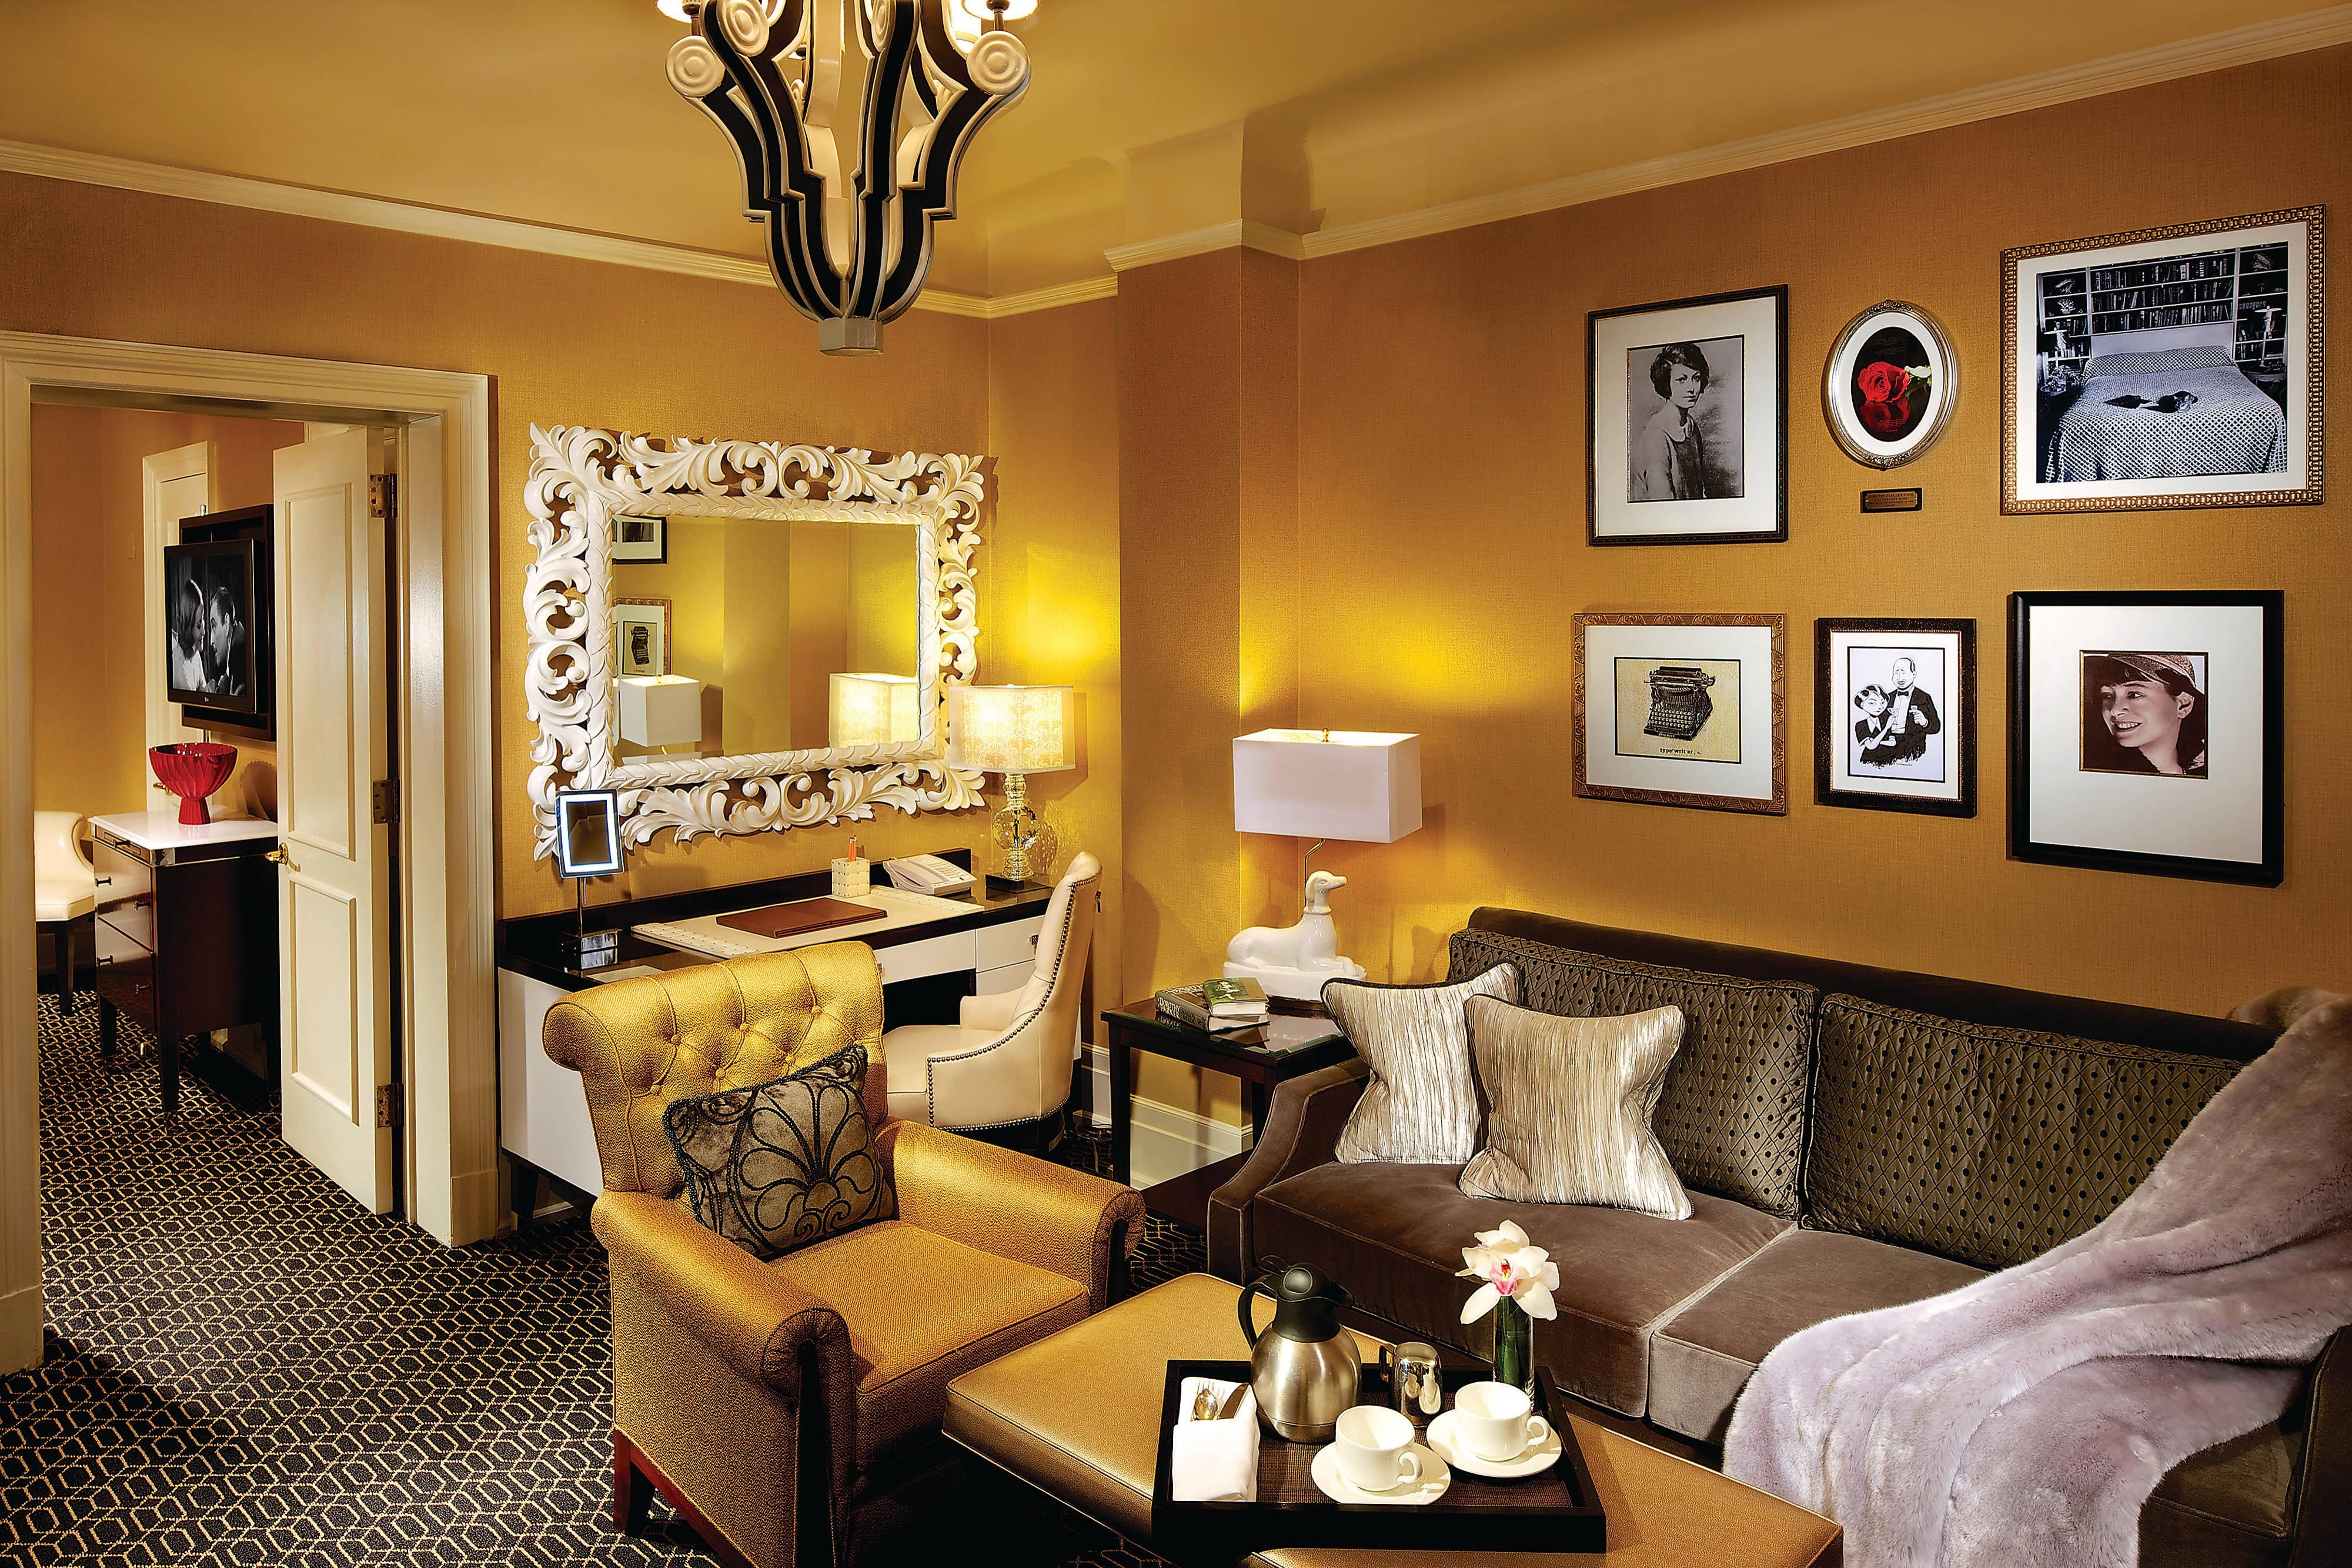 sofa cleaning nyc cost pull out bed bobs furniture historic 4 star hotel the algonquin times square